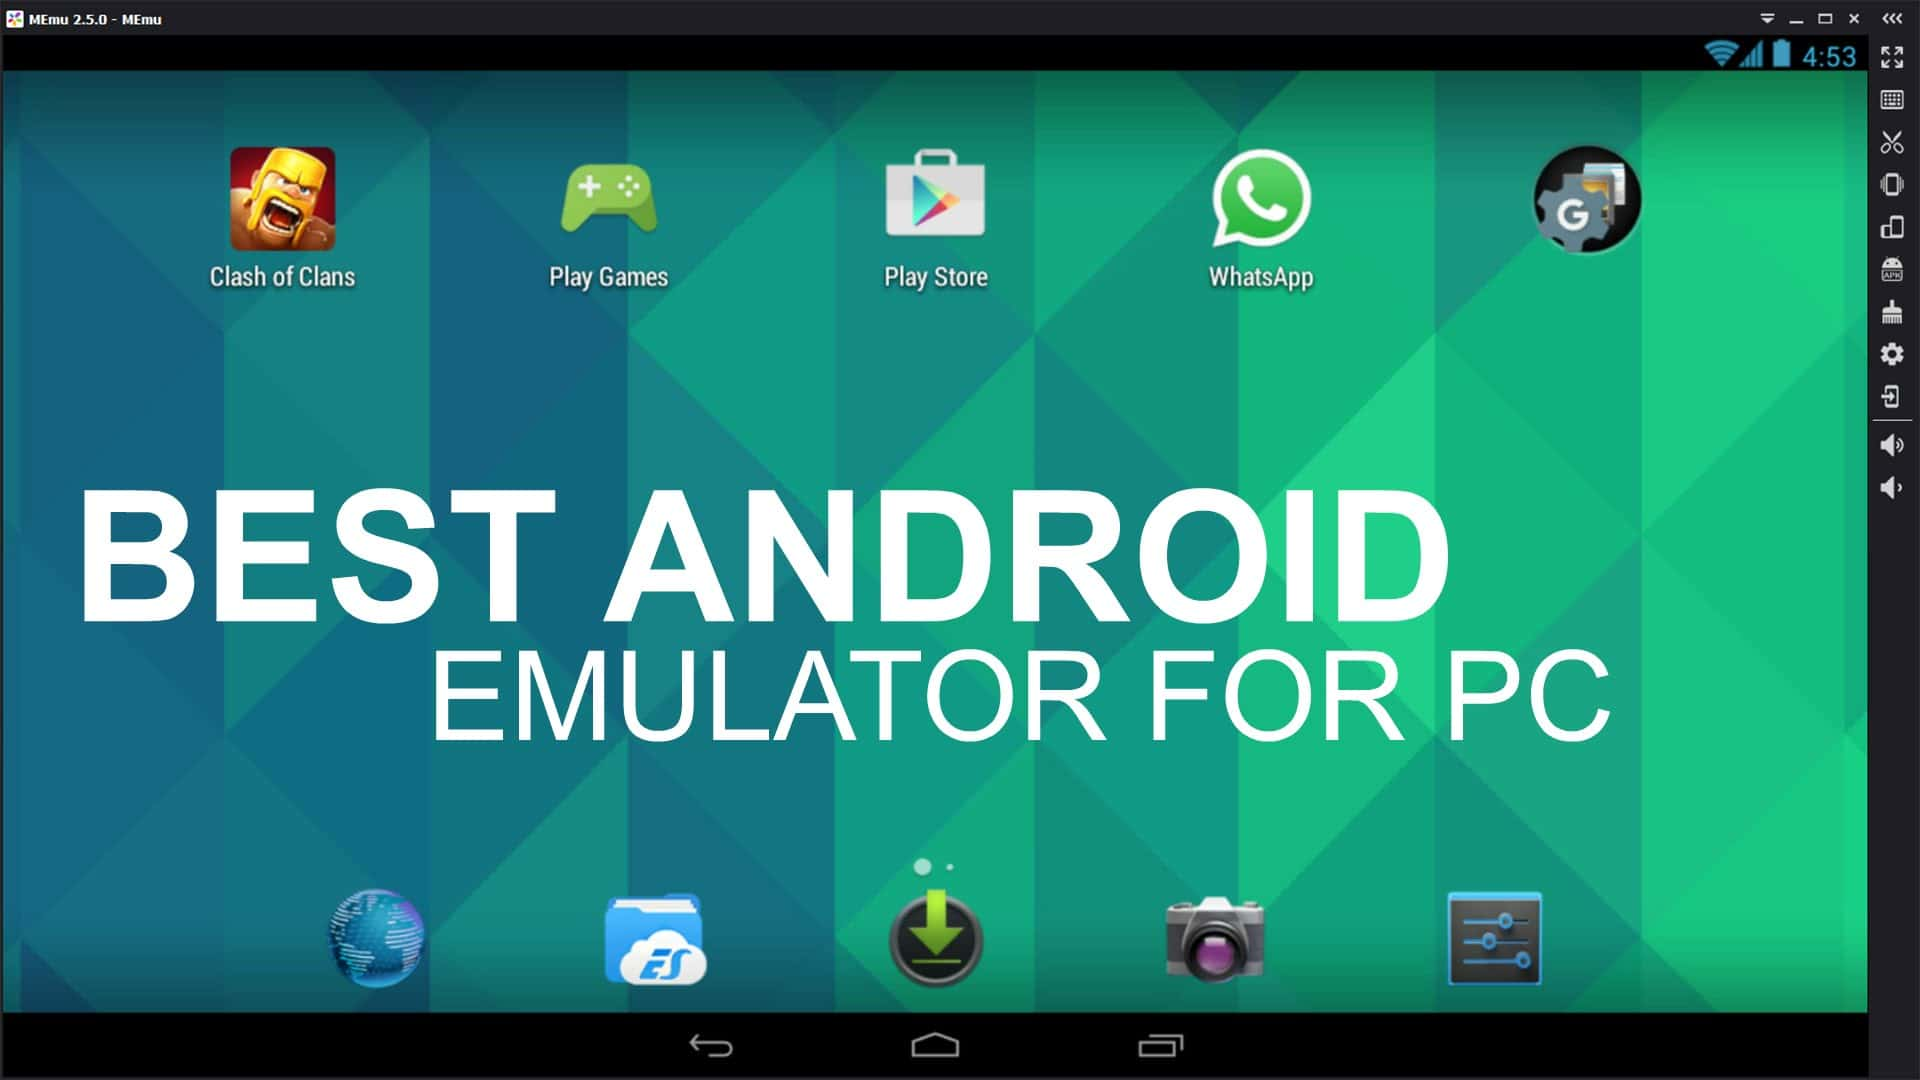 play store emulator for pc